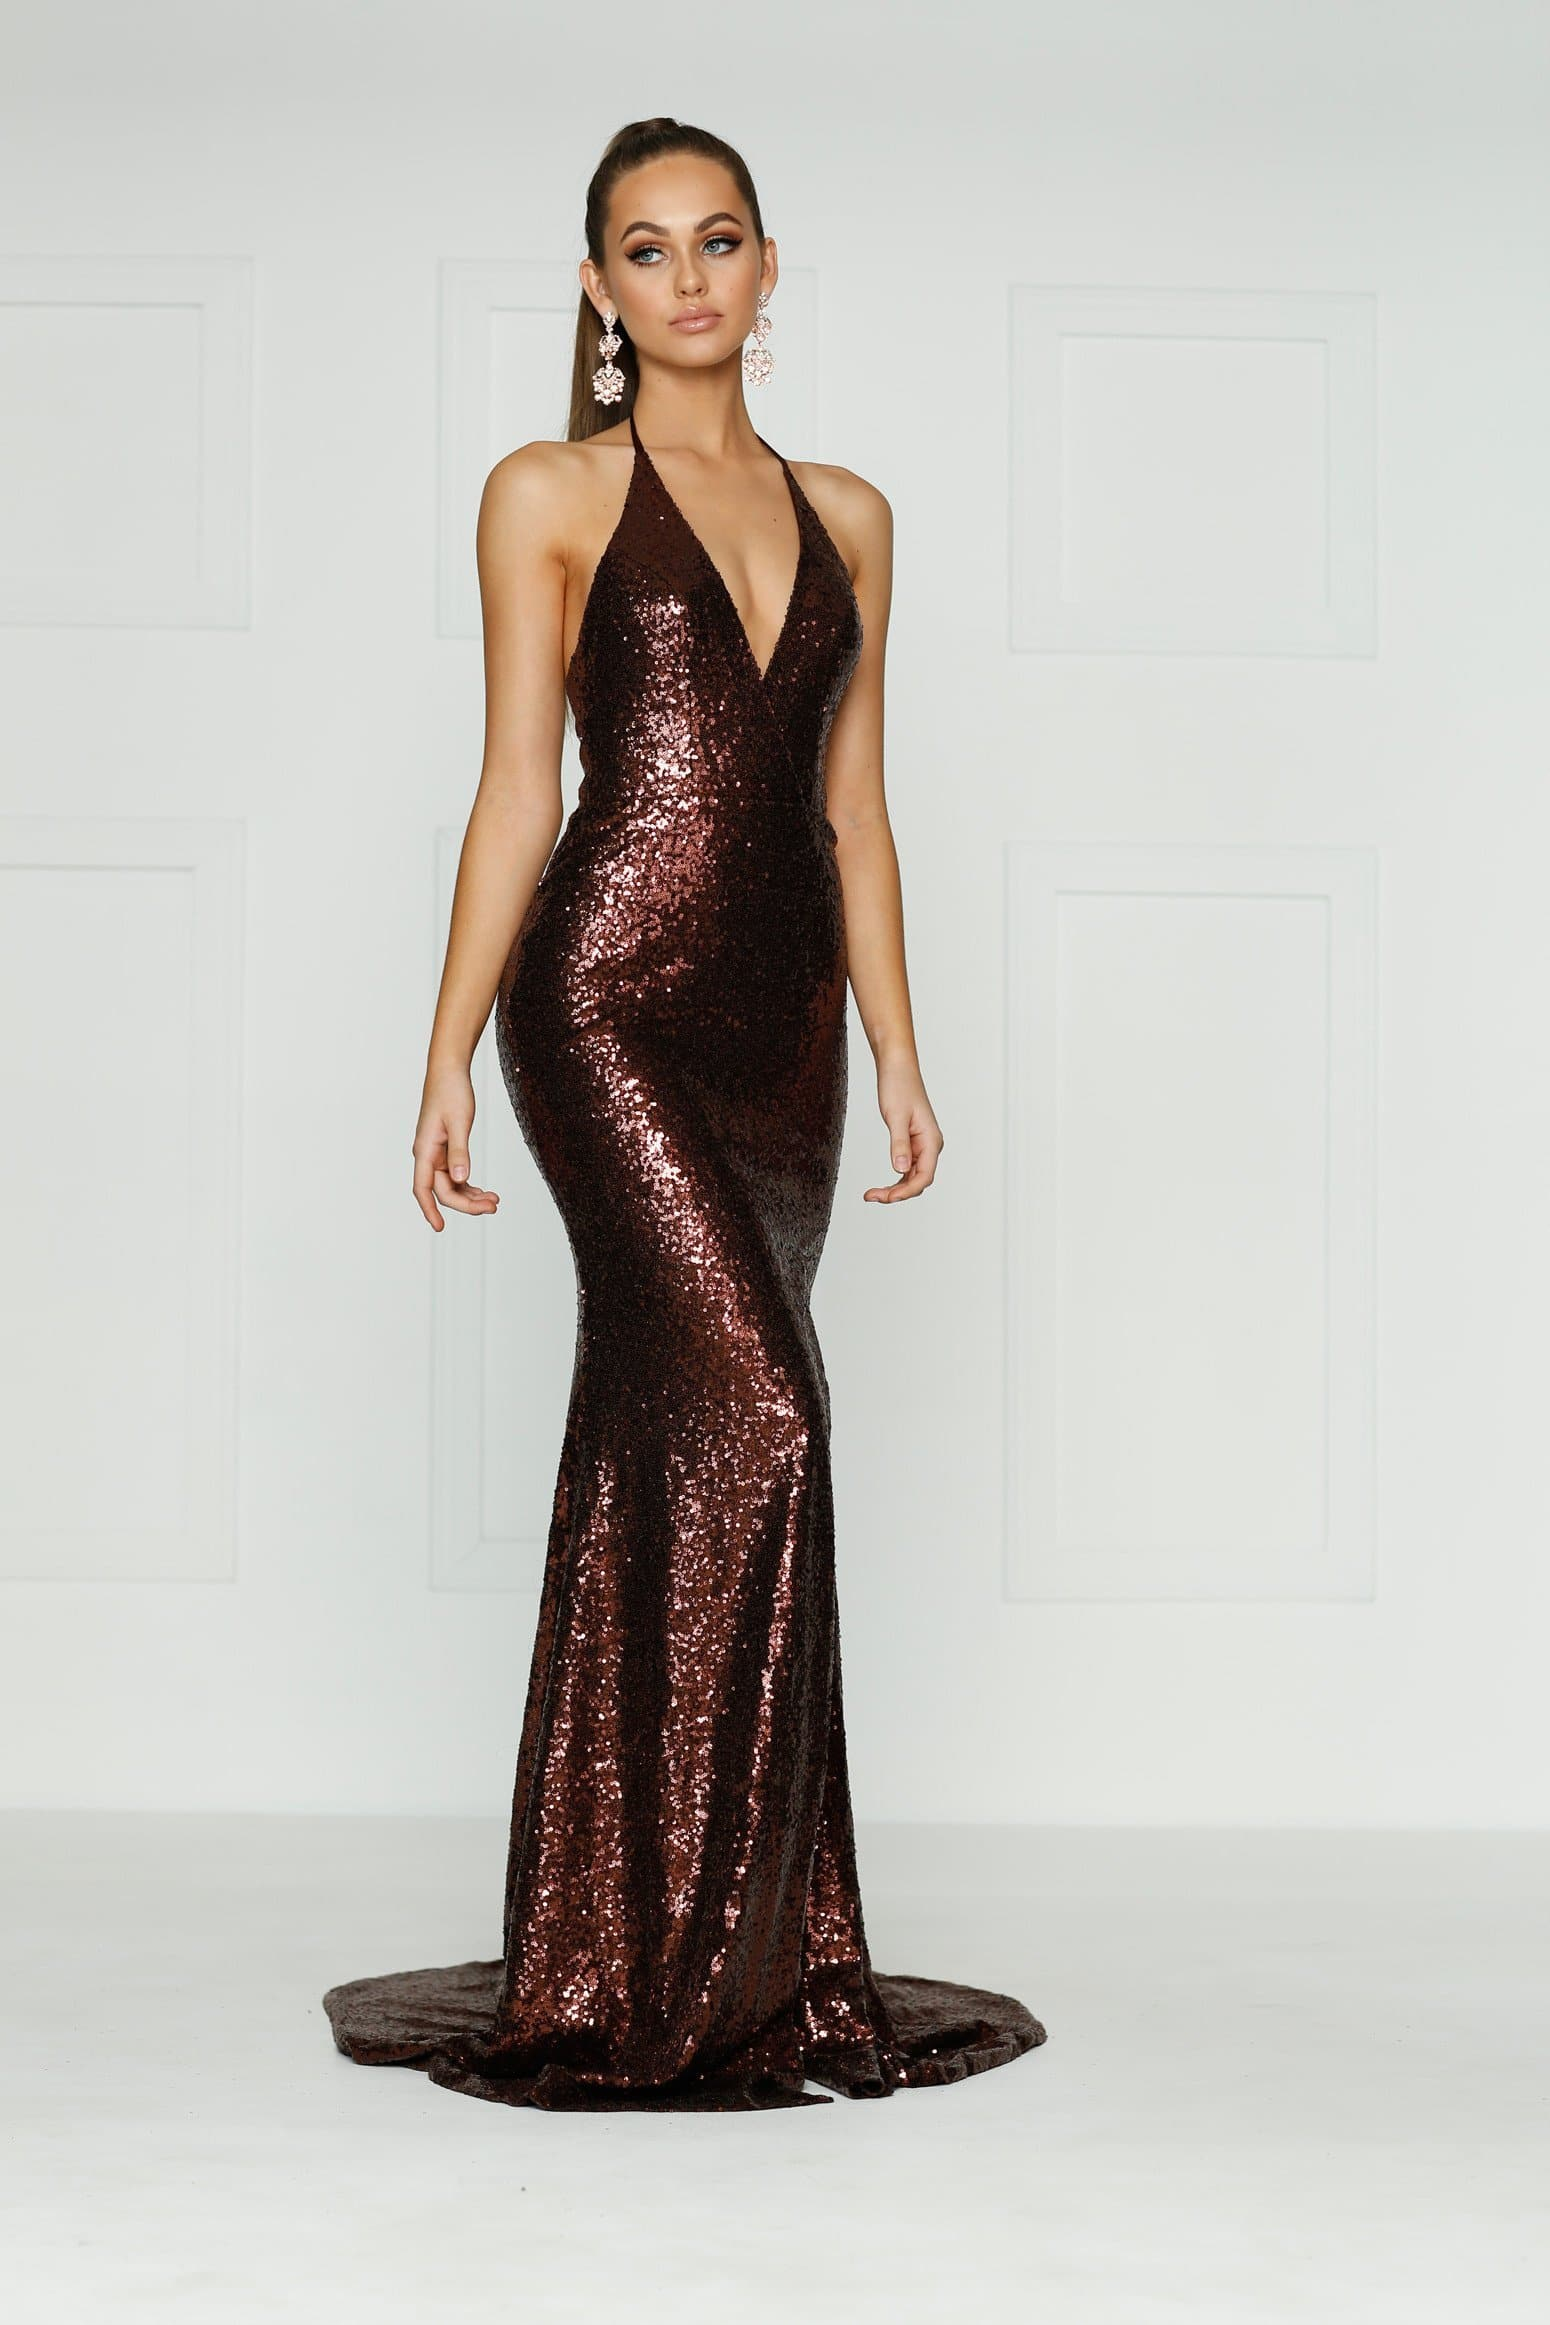 A&N Kylie- Chocolate Brown Sequin Dress with Low Back and Side Slit